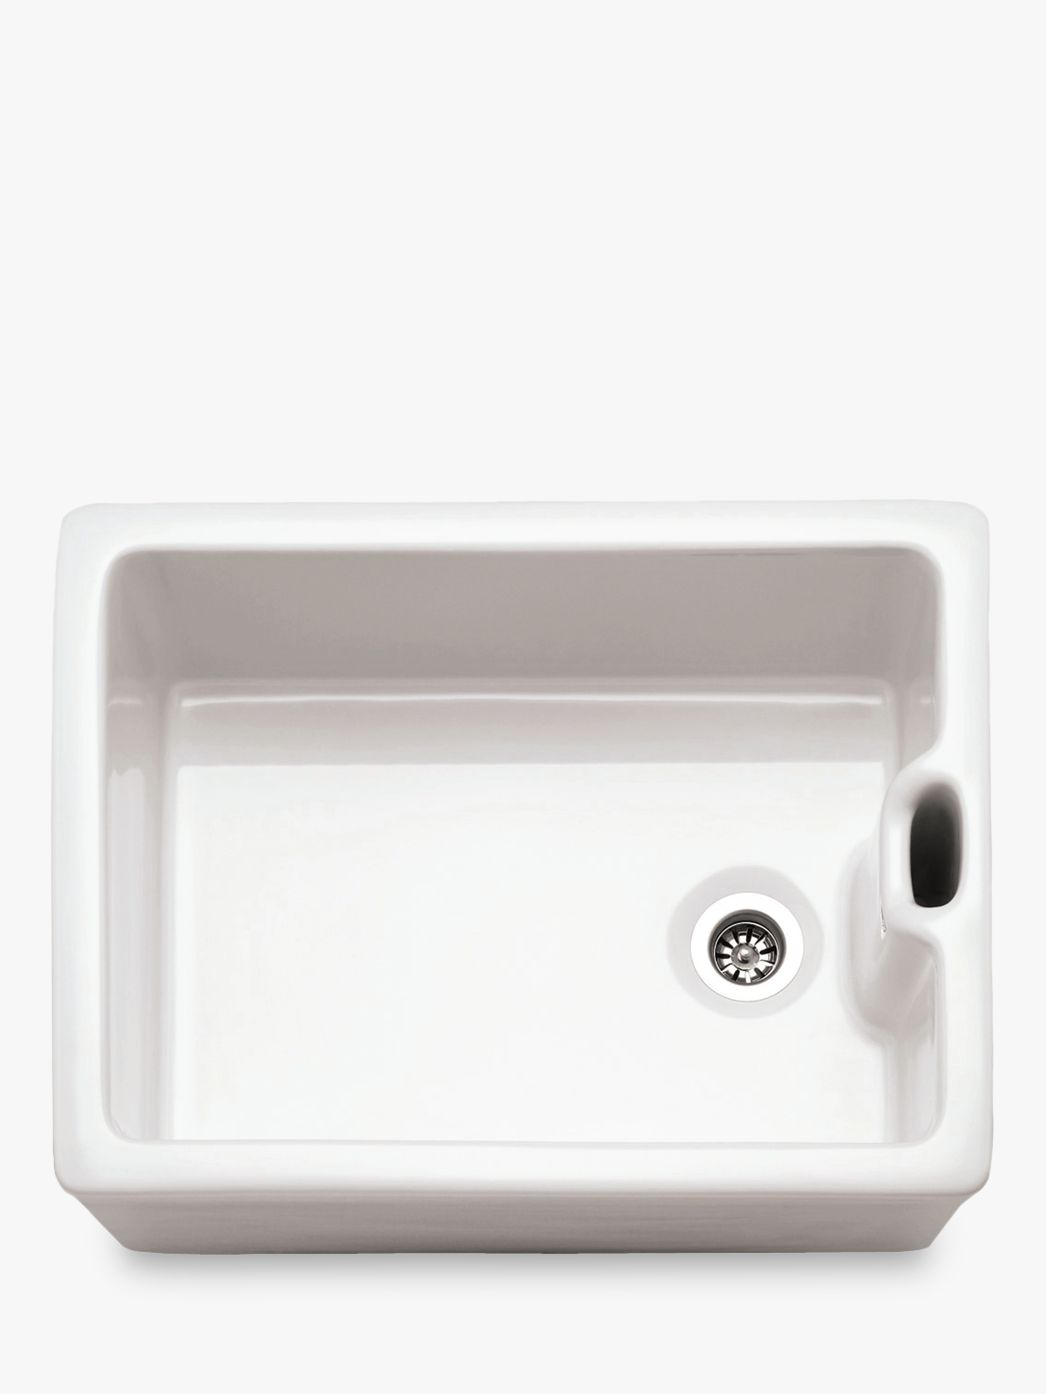 Franke Franke Belfast BAK 710 Single Bowl Sink, White